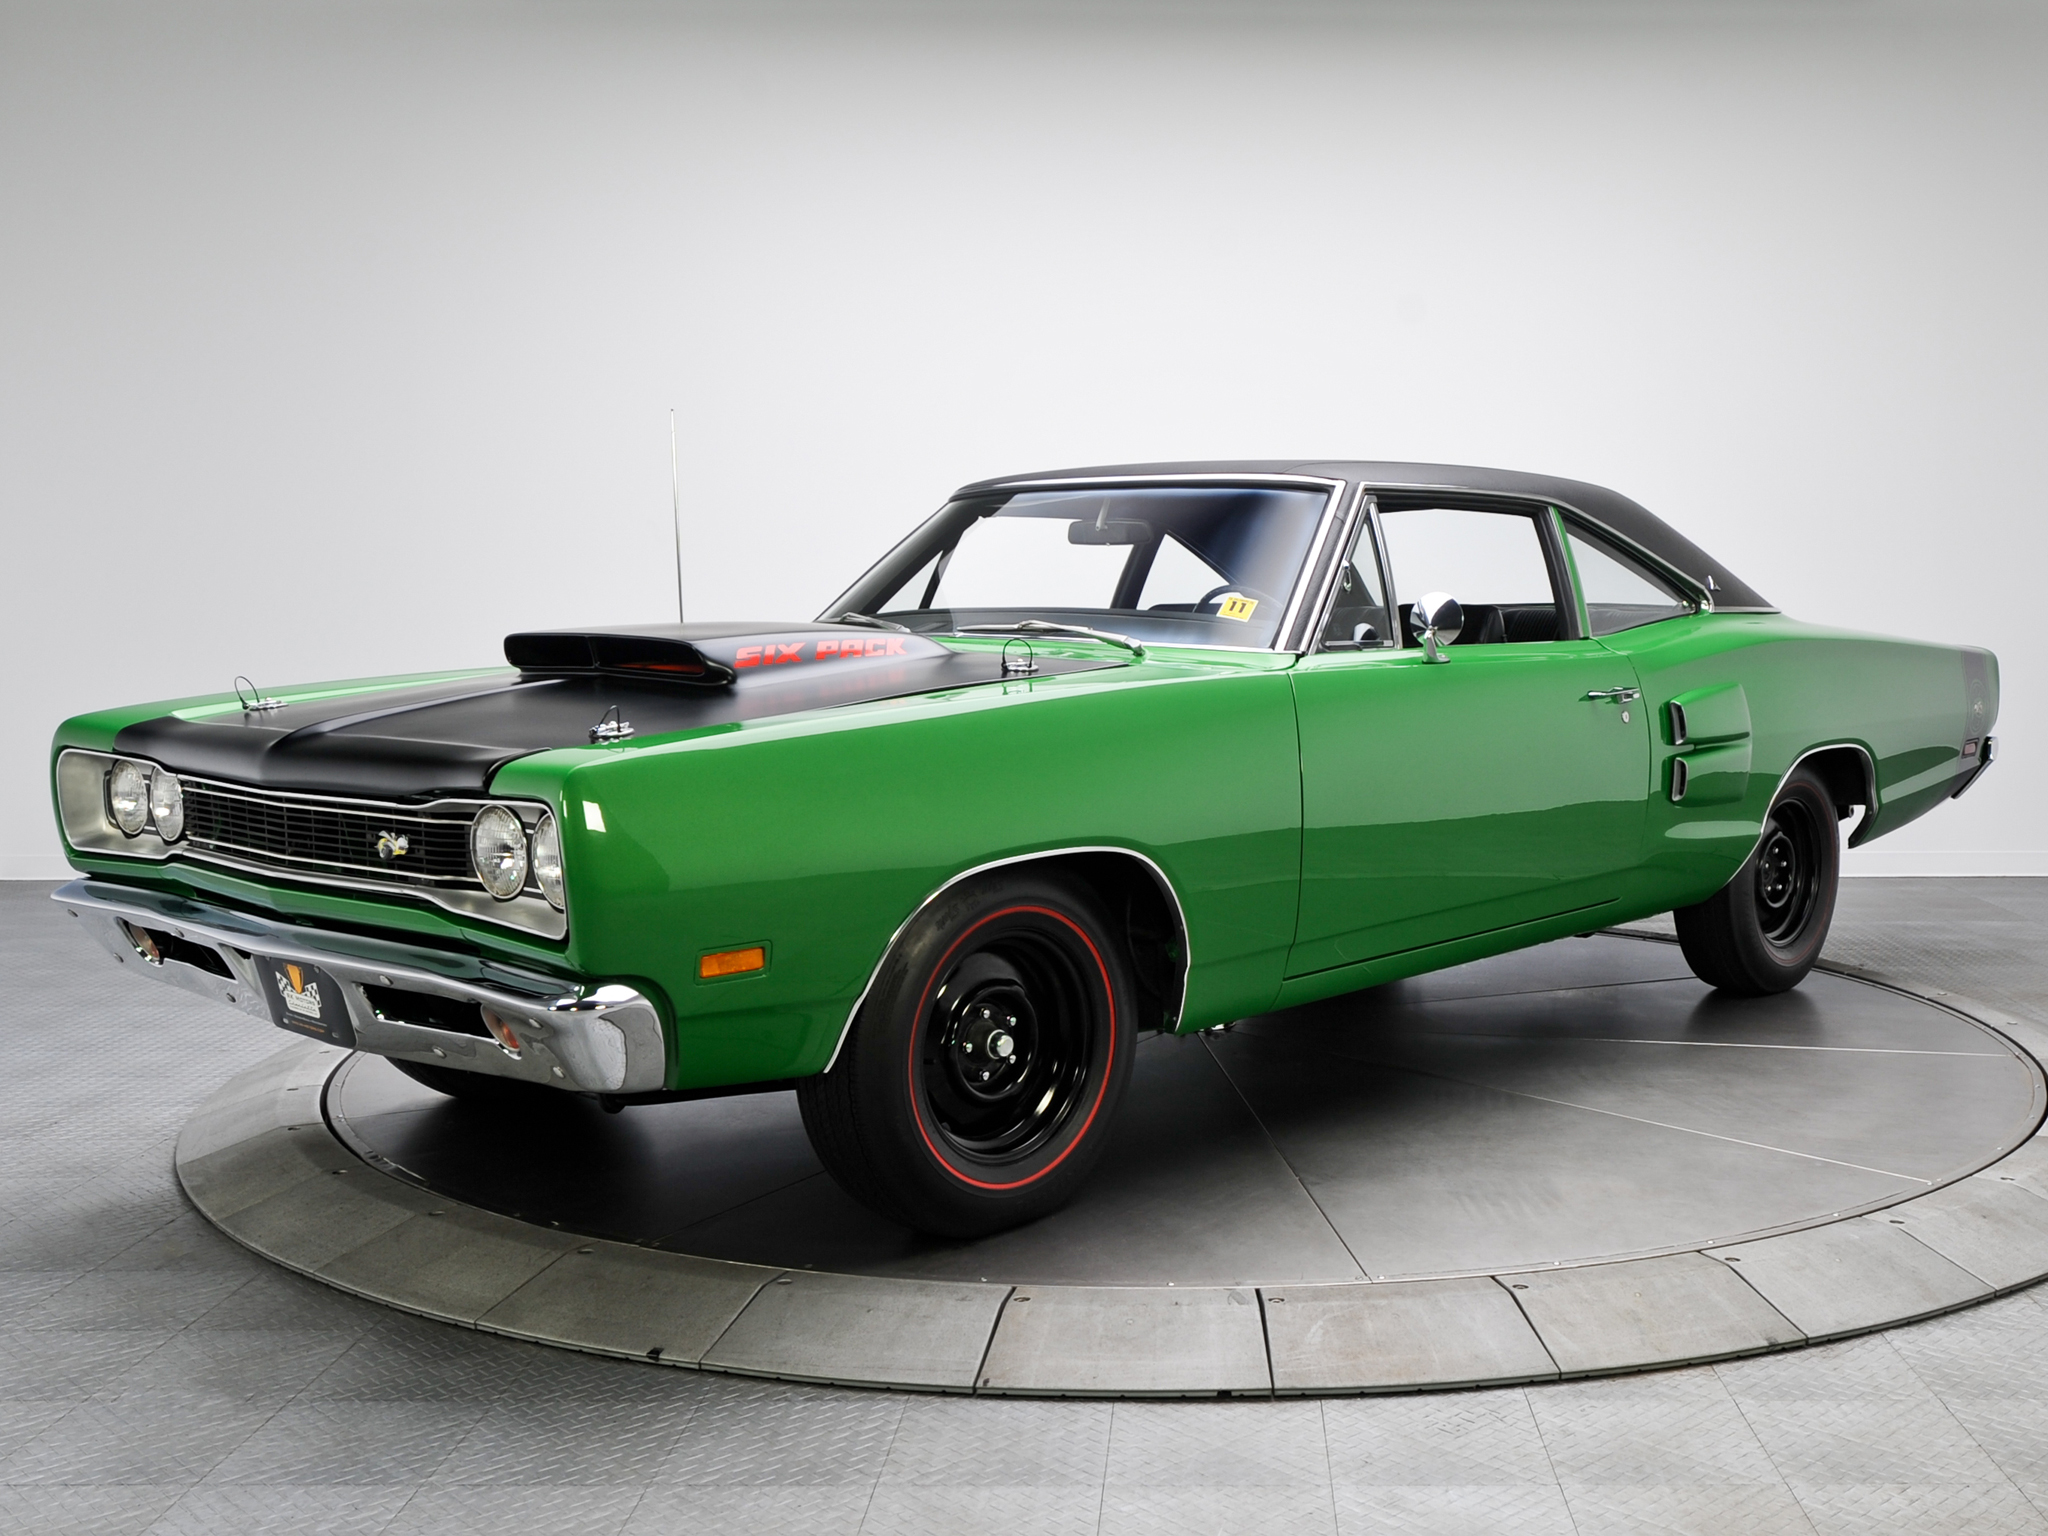 1969 Dodge Coronet Super Bee 440 Six Pack Coupe Wm21 Muscle Classic